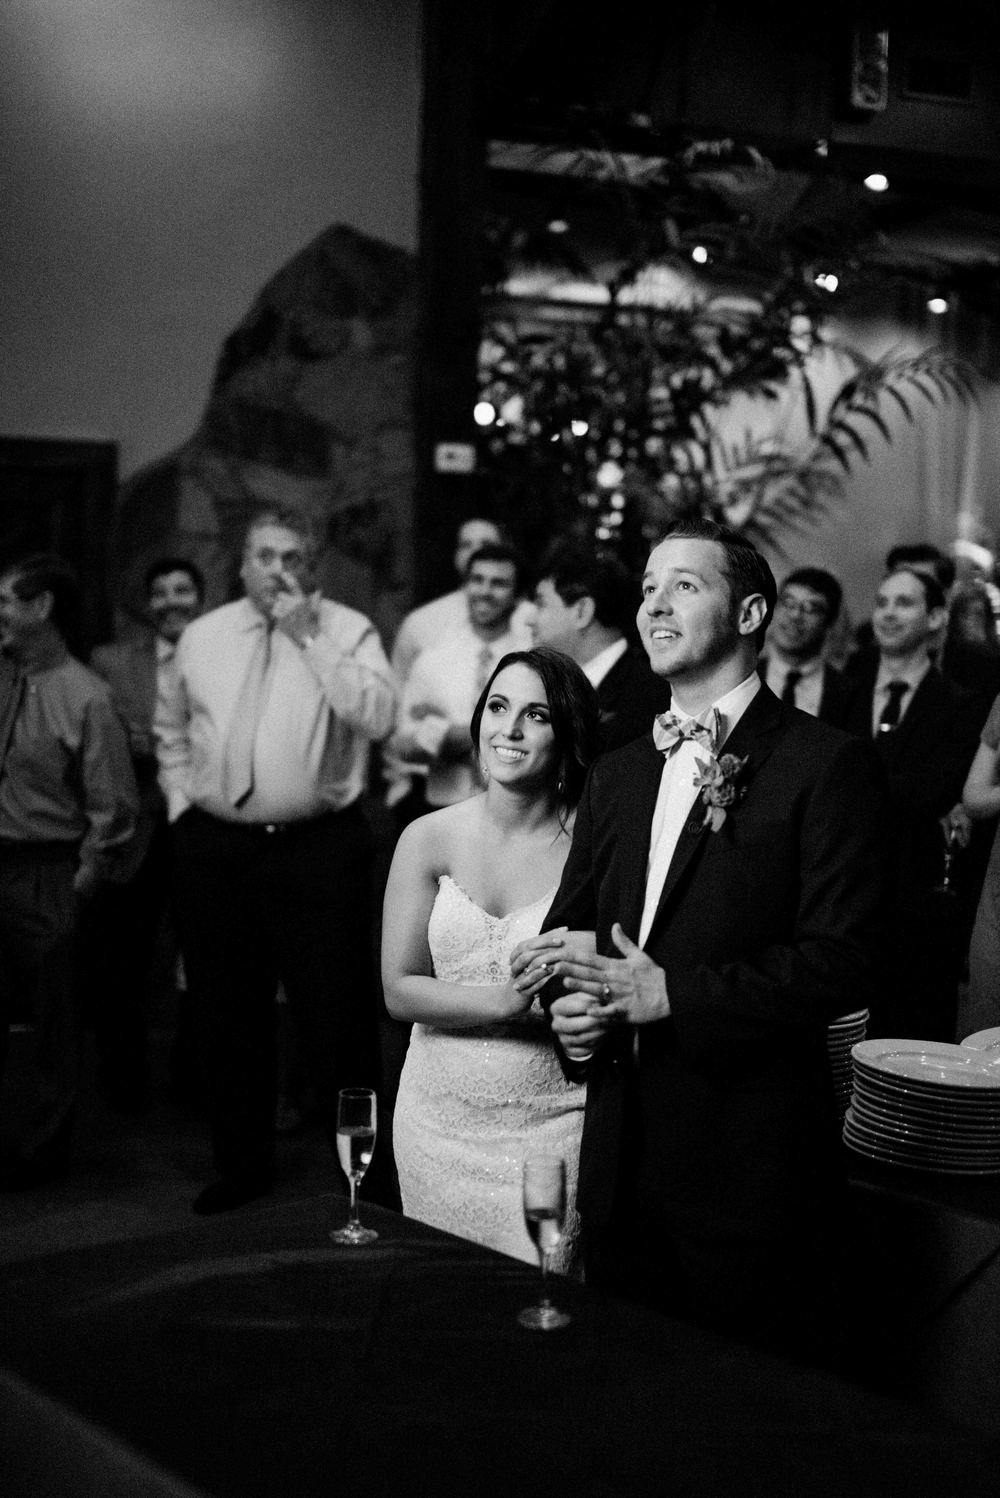 Dana Fernandez Photography Agave Road Agave Estates Houston Texas Wedding Photographer Destination Southwest Film-45.jpg